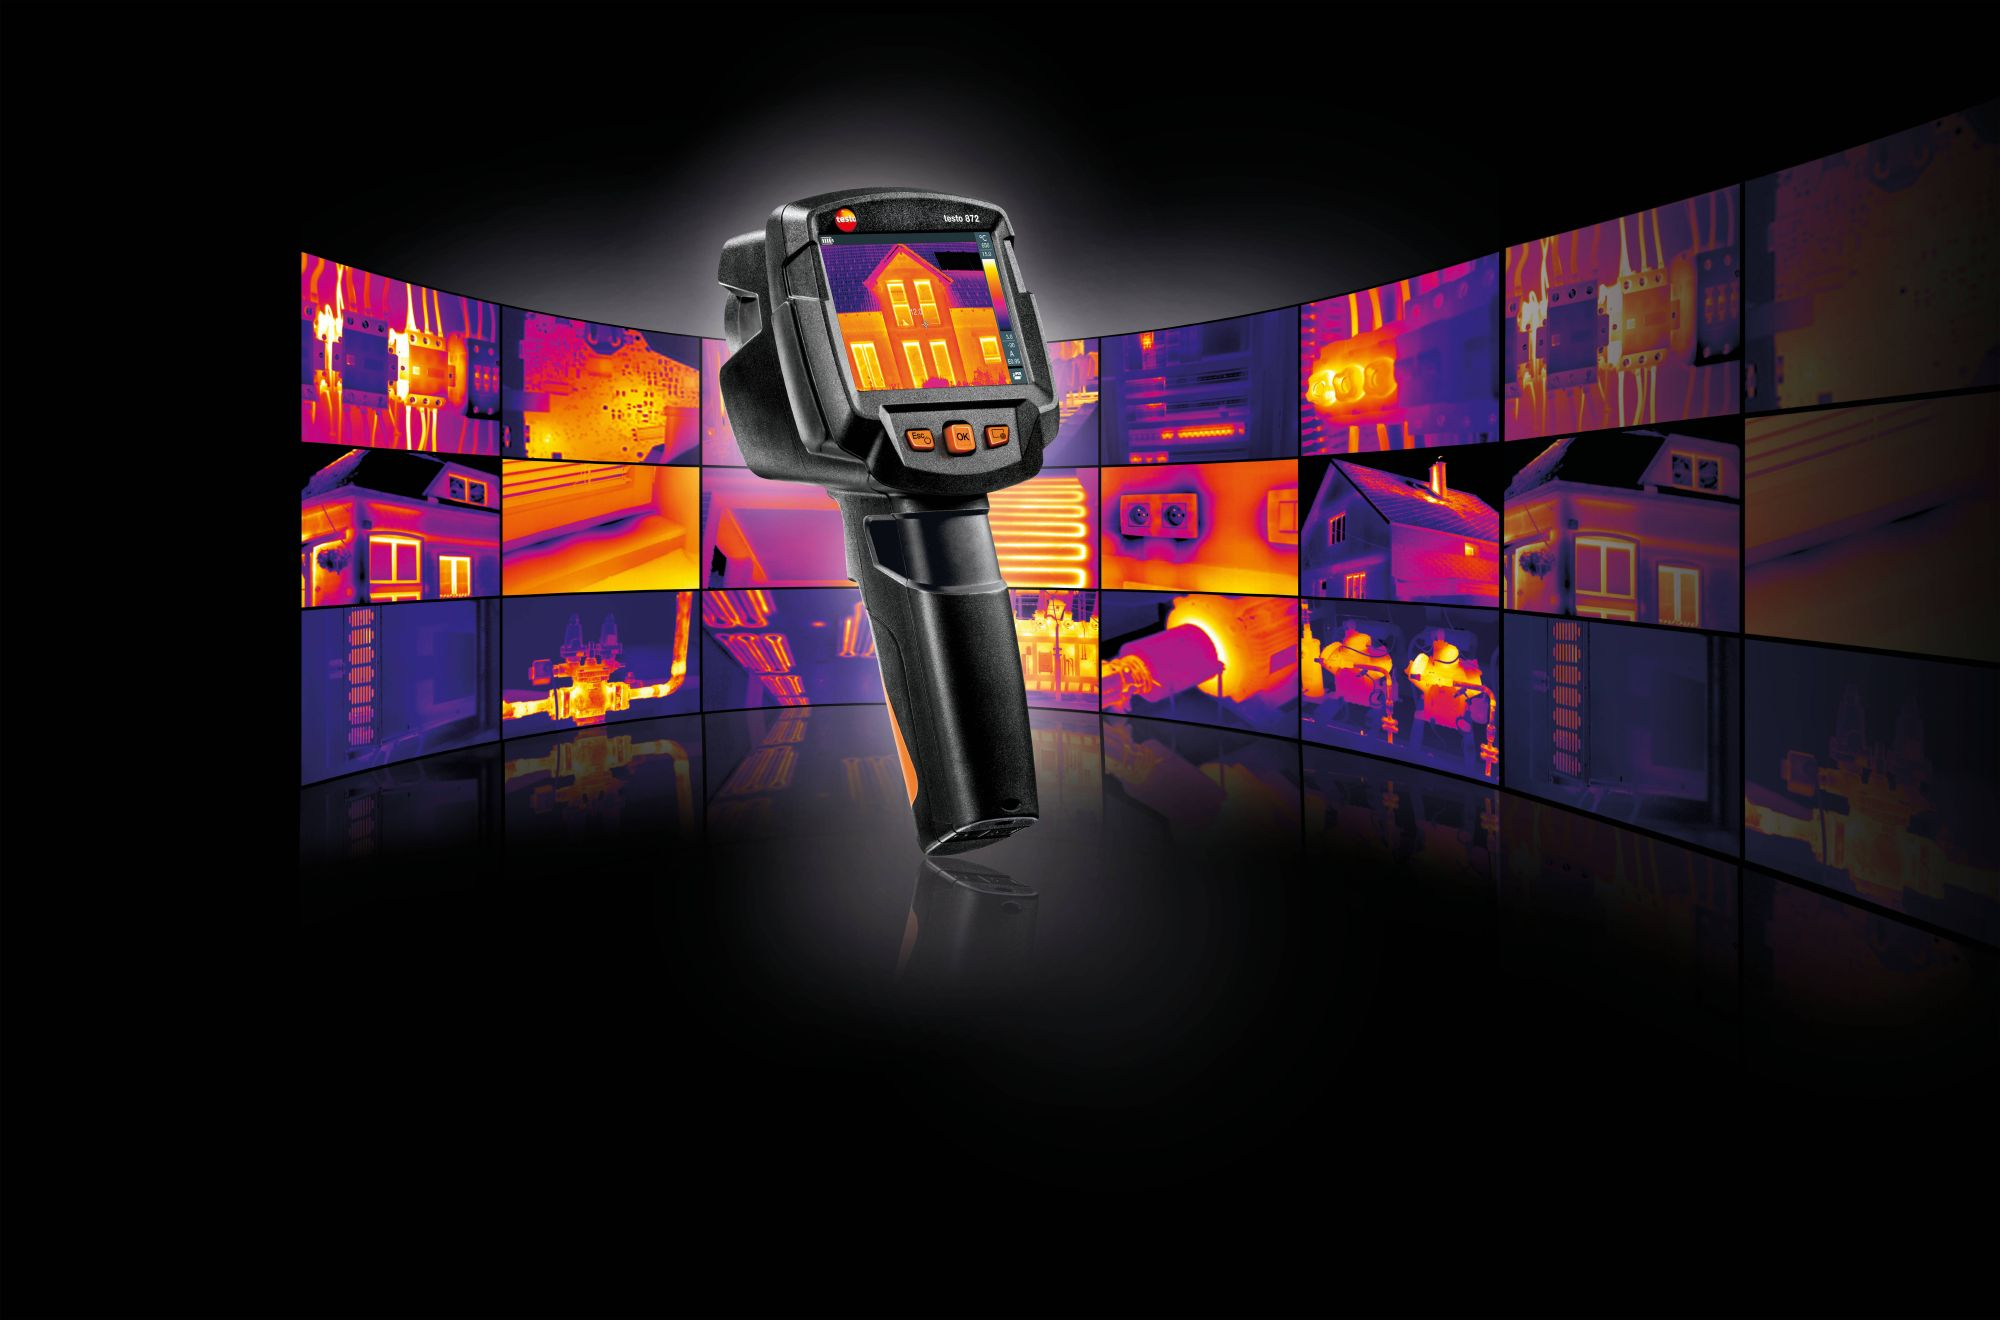 testo-872-thermography-key-visual-wide.jpg